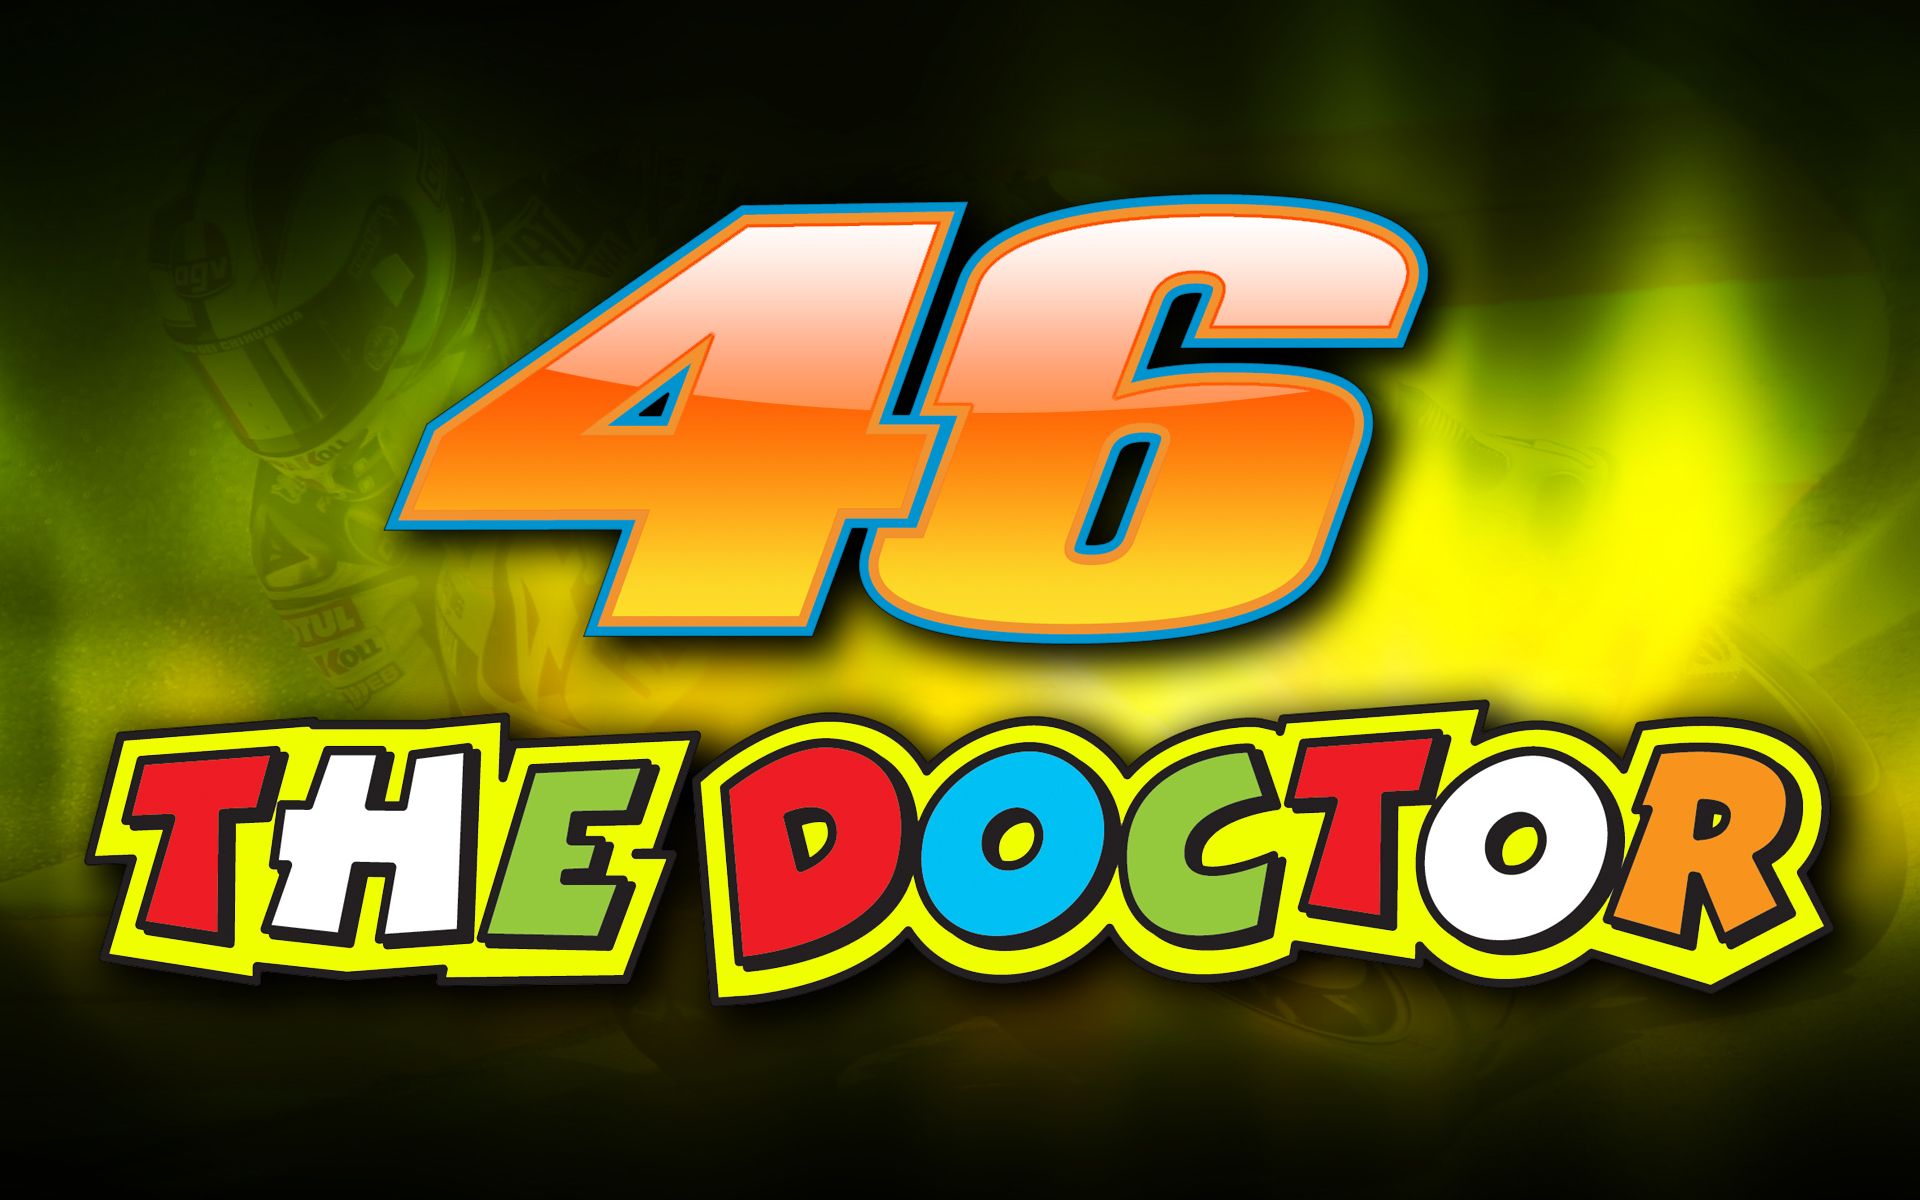 Valentino Rossi The DoctorValentino Rossi The Doctor Font